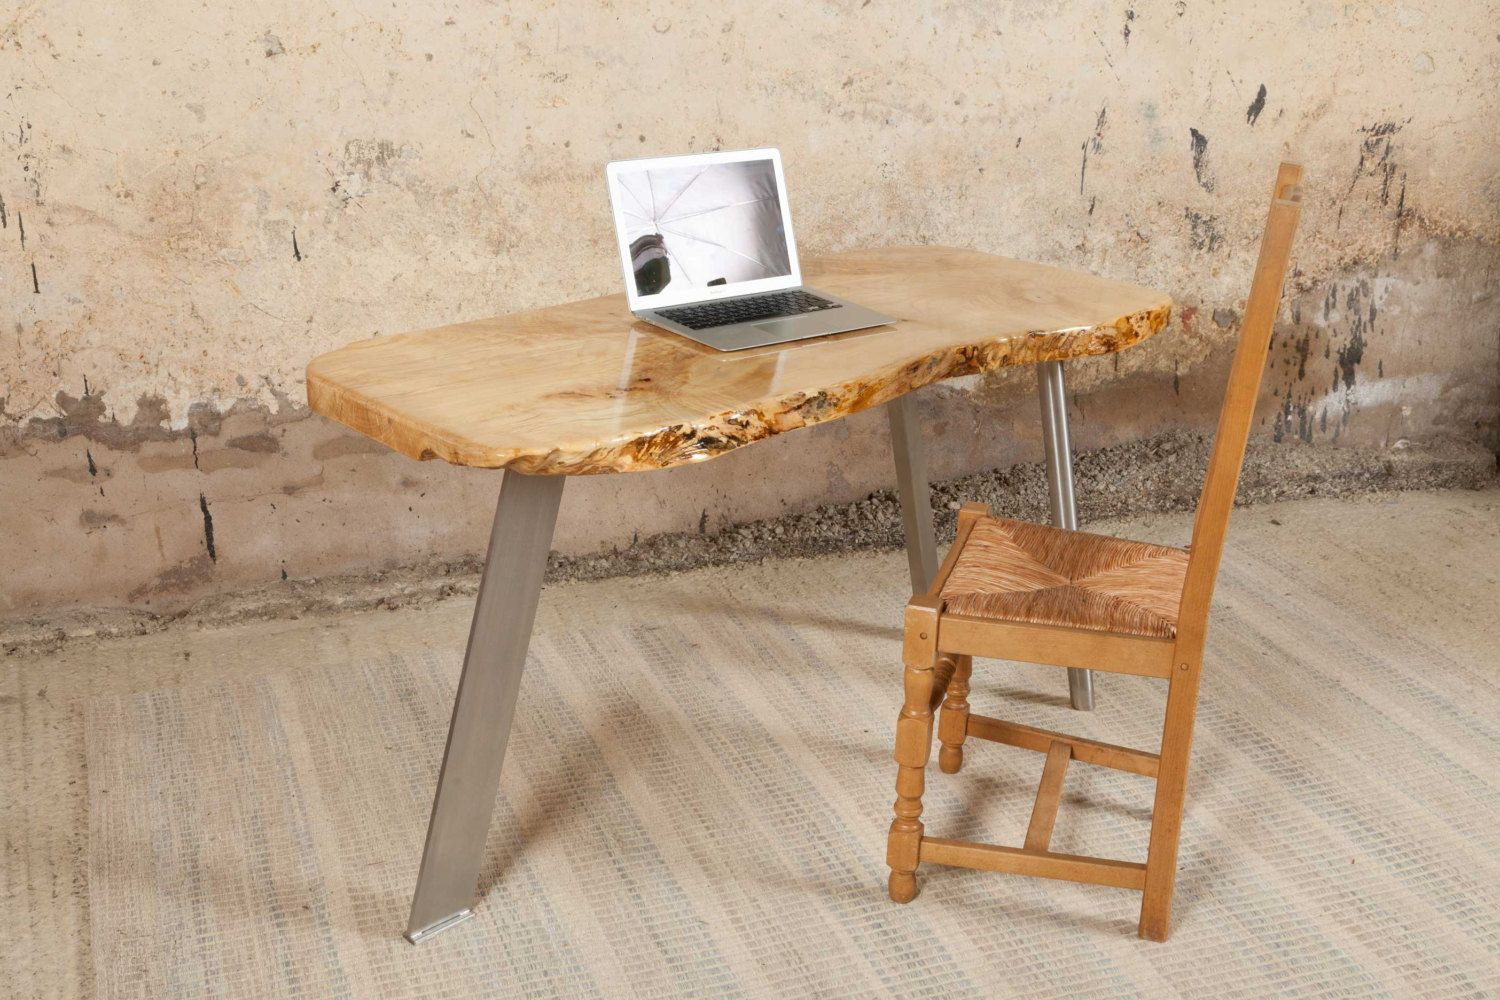 Sycamore Handmade Desk by coffeetableshop on Etsy